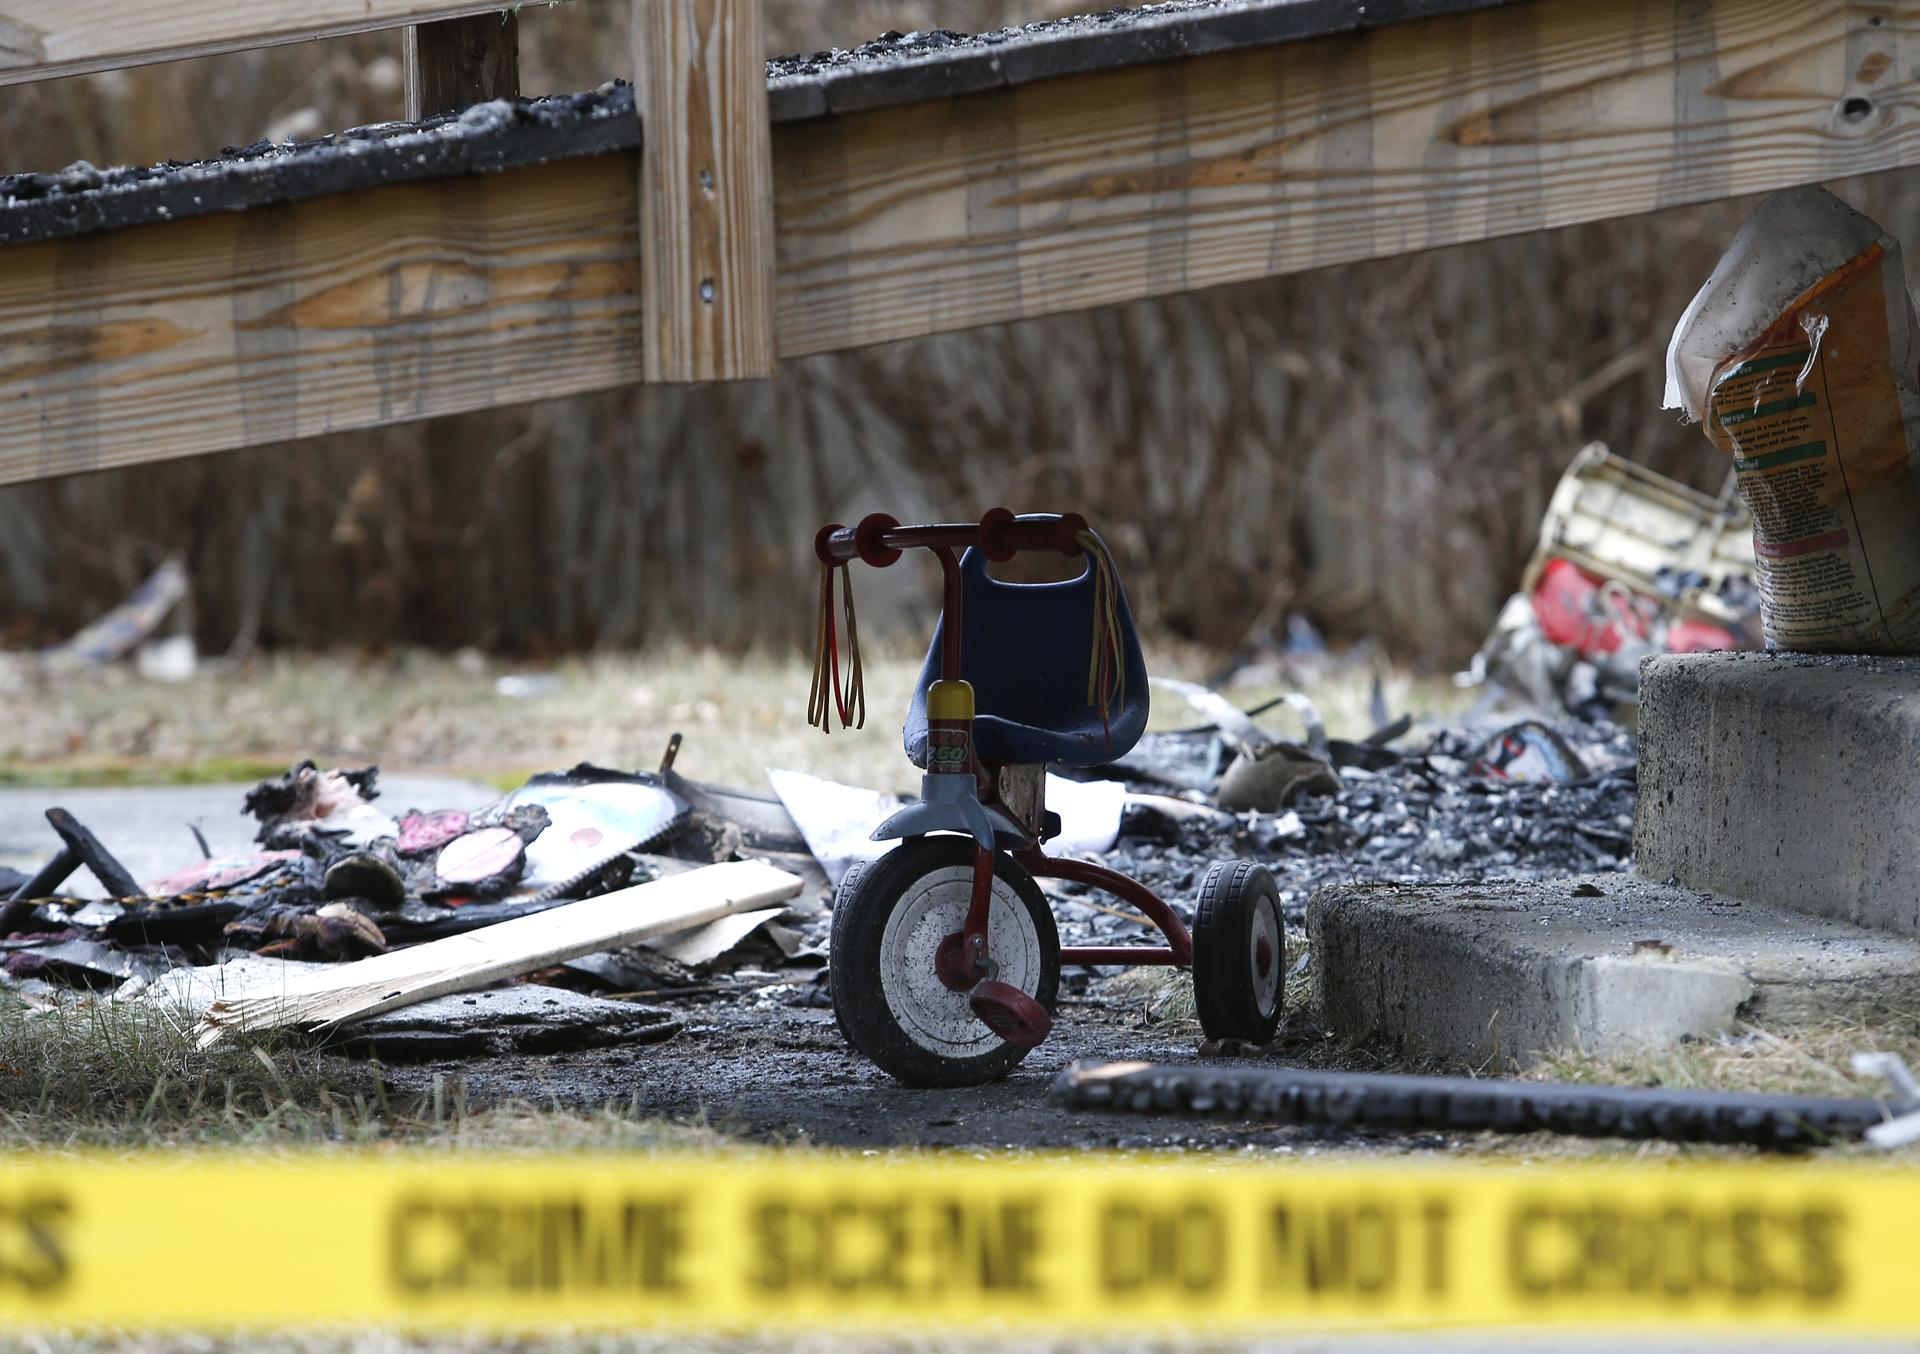 Coventry, Rhode Island -- 1/29/2018 - A child's toy is seen at the scene of a fatal fire where Ed Lorenzen, who was 47 and a longtime veteran of the federal budget process, died in the fire at his Coventry home along with his son, Michael. (Jessica Rinaldi/Globe Staff) Topic: 30coventry Reporter: